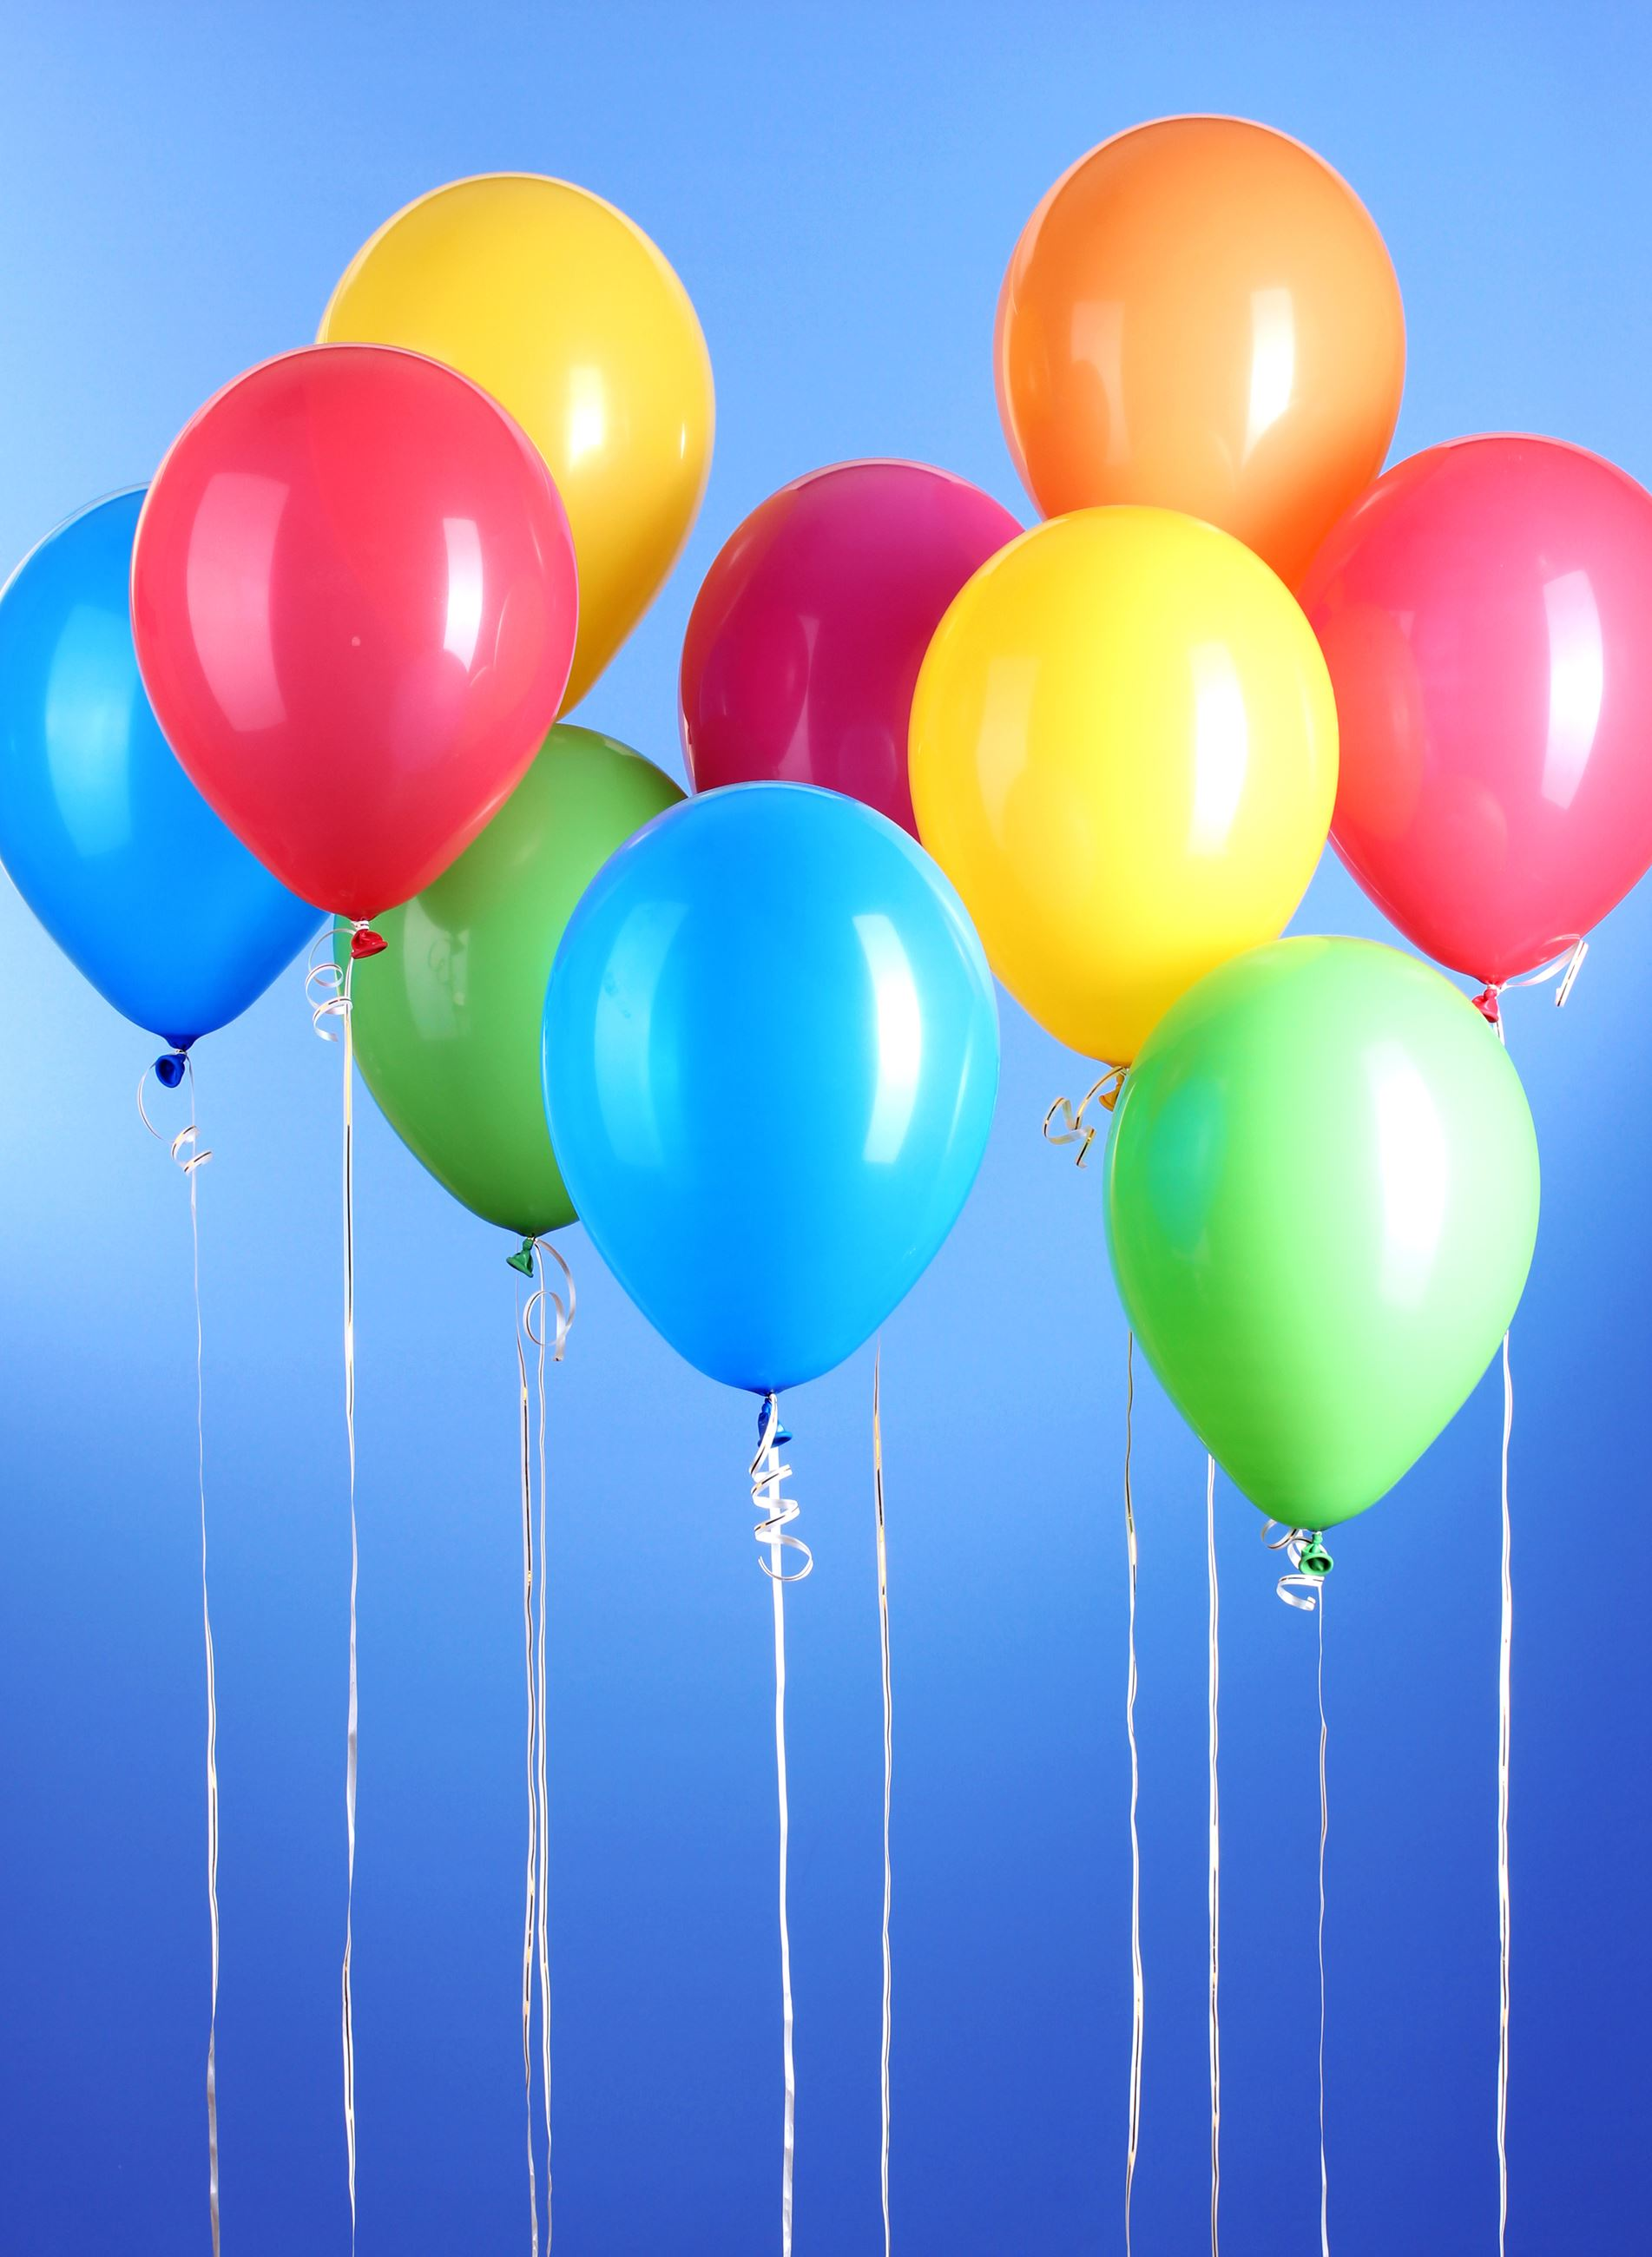 Balloons 3 - Birthdays